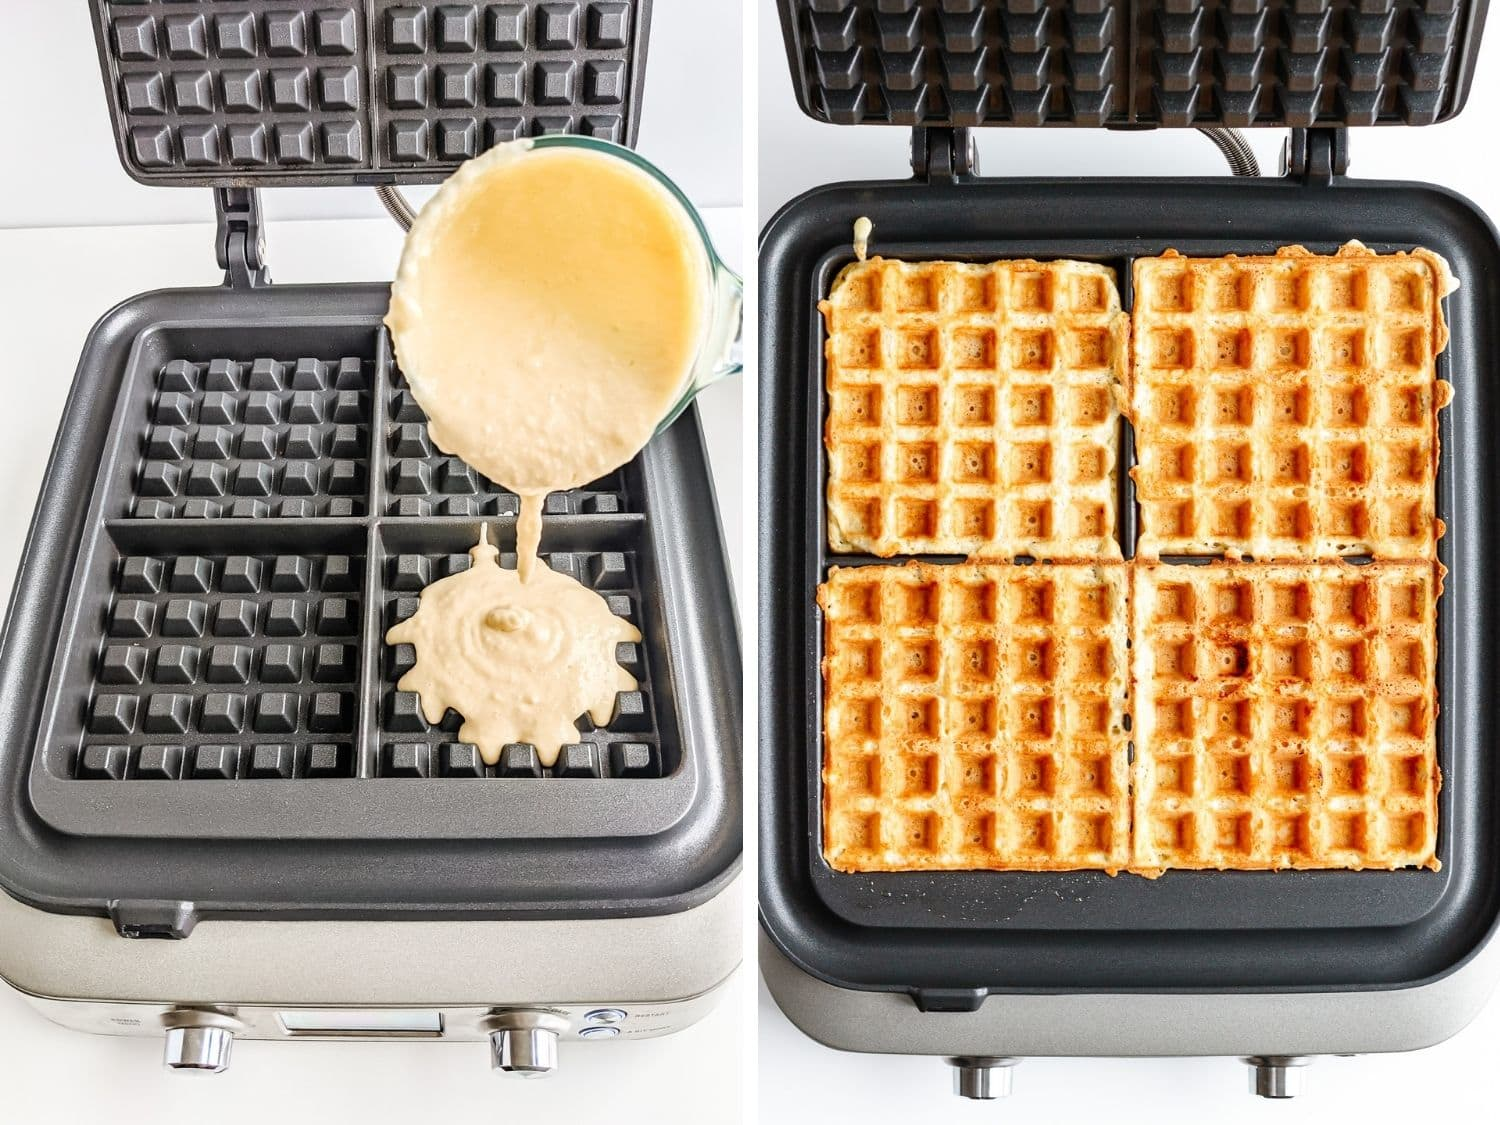 Collage showing waffle batter being cooked in a waffle iron.